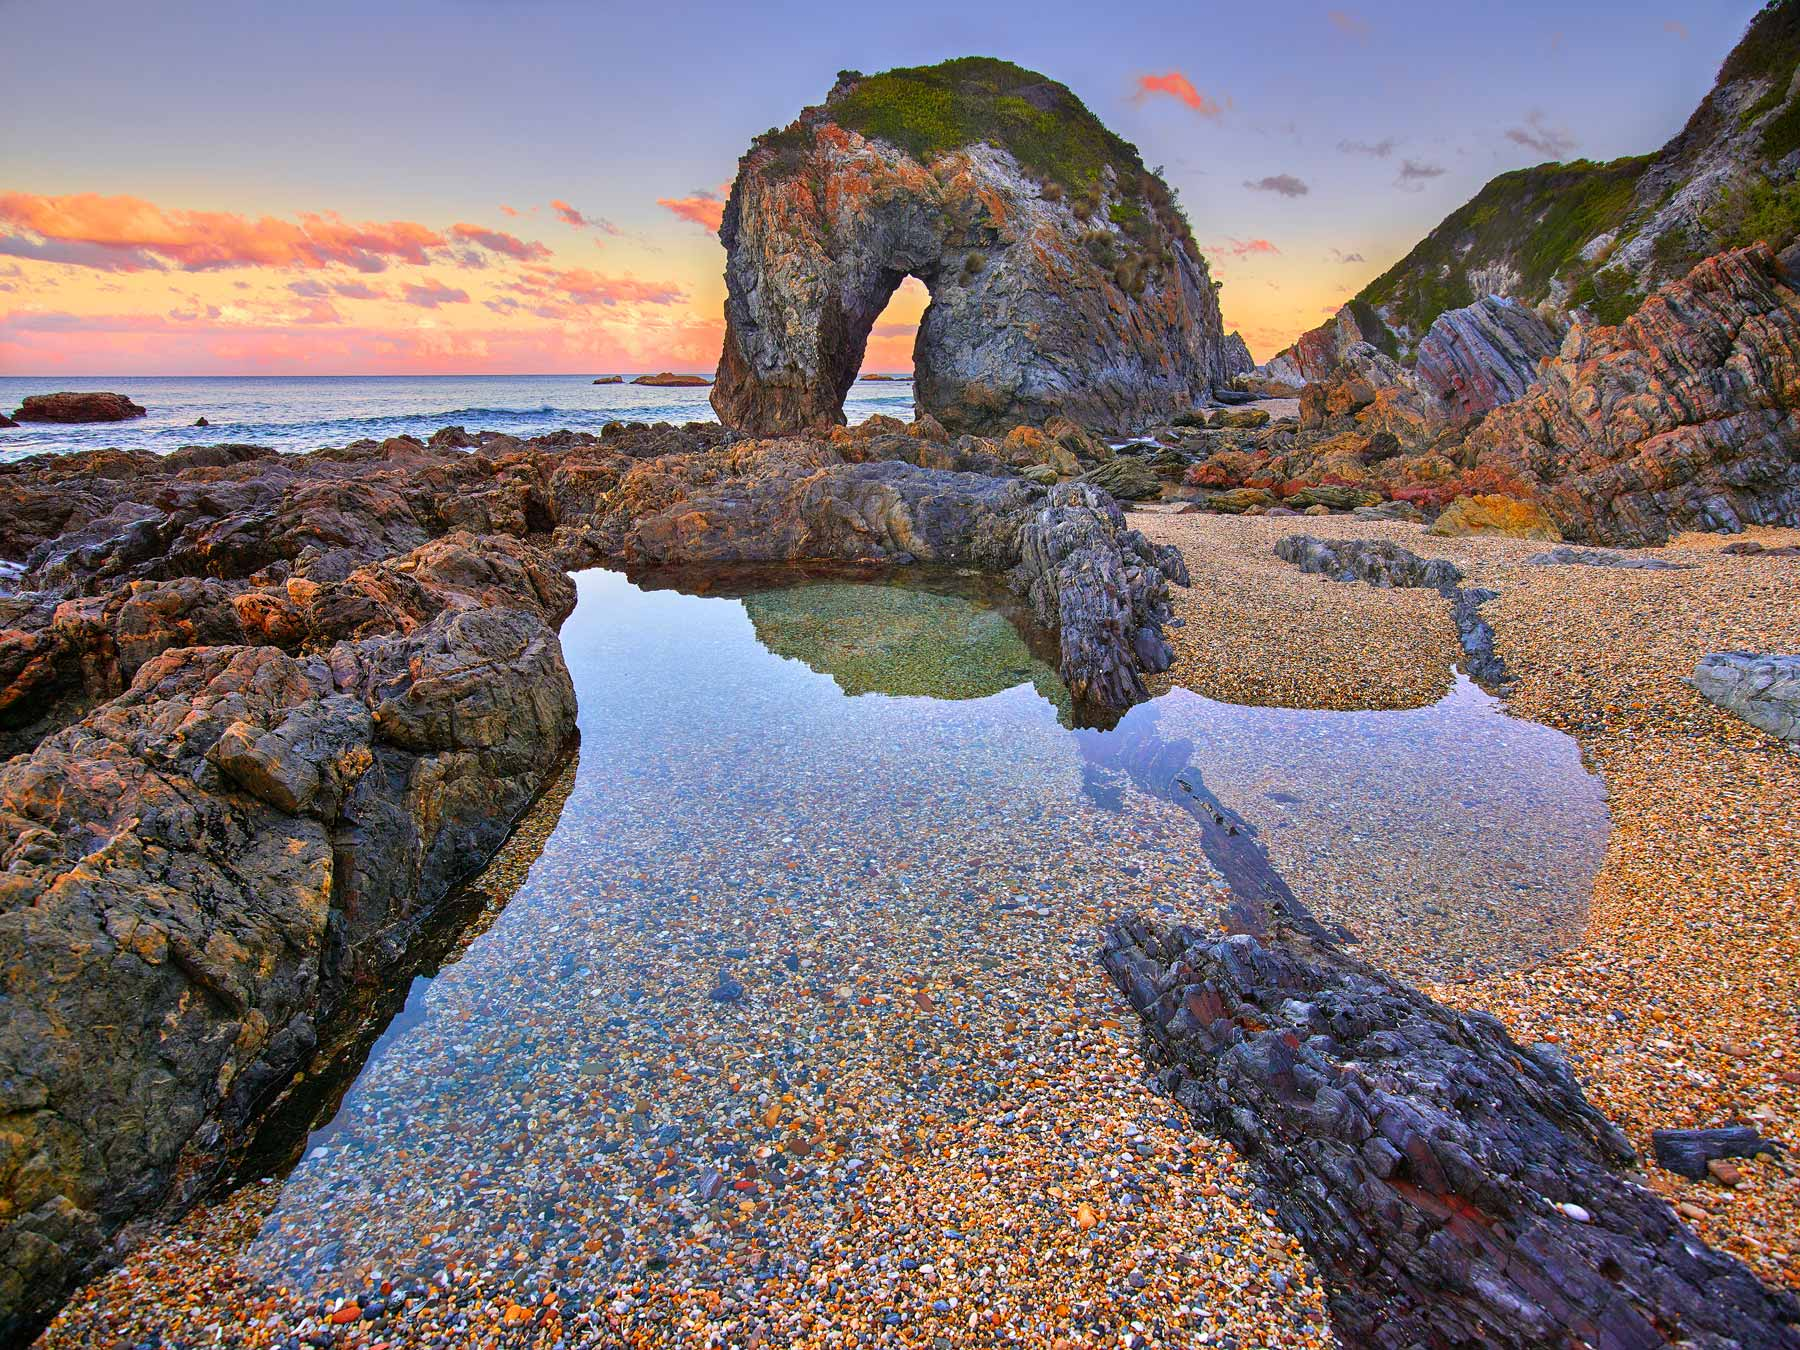 Beautiful detail in this tranquil view of Horse Head Rock, NSW, Australia.